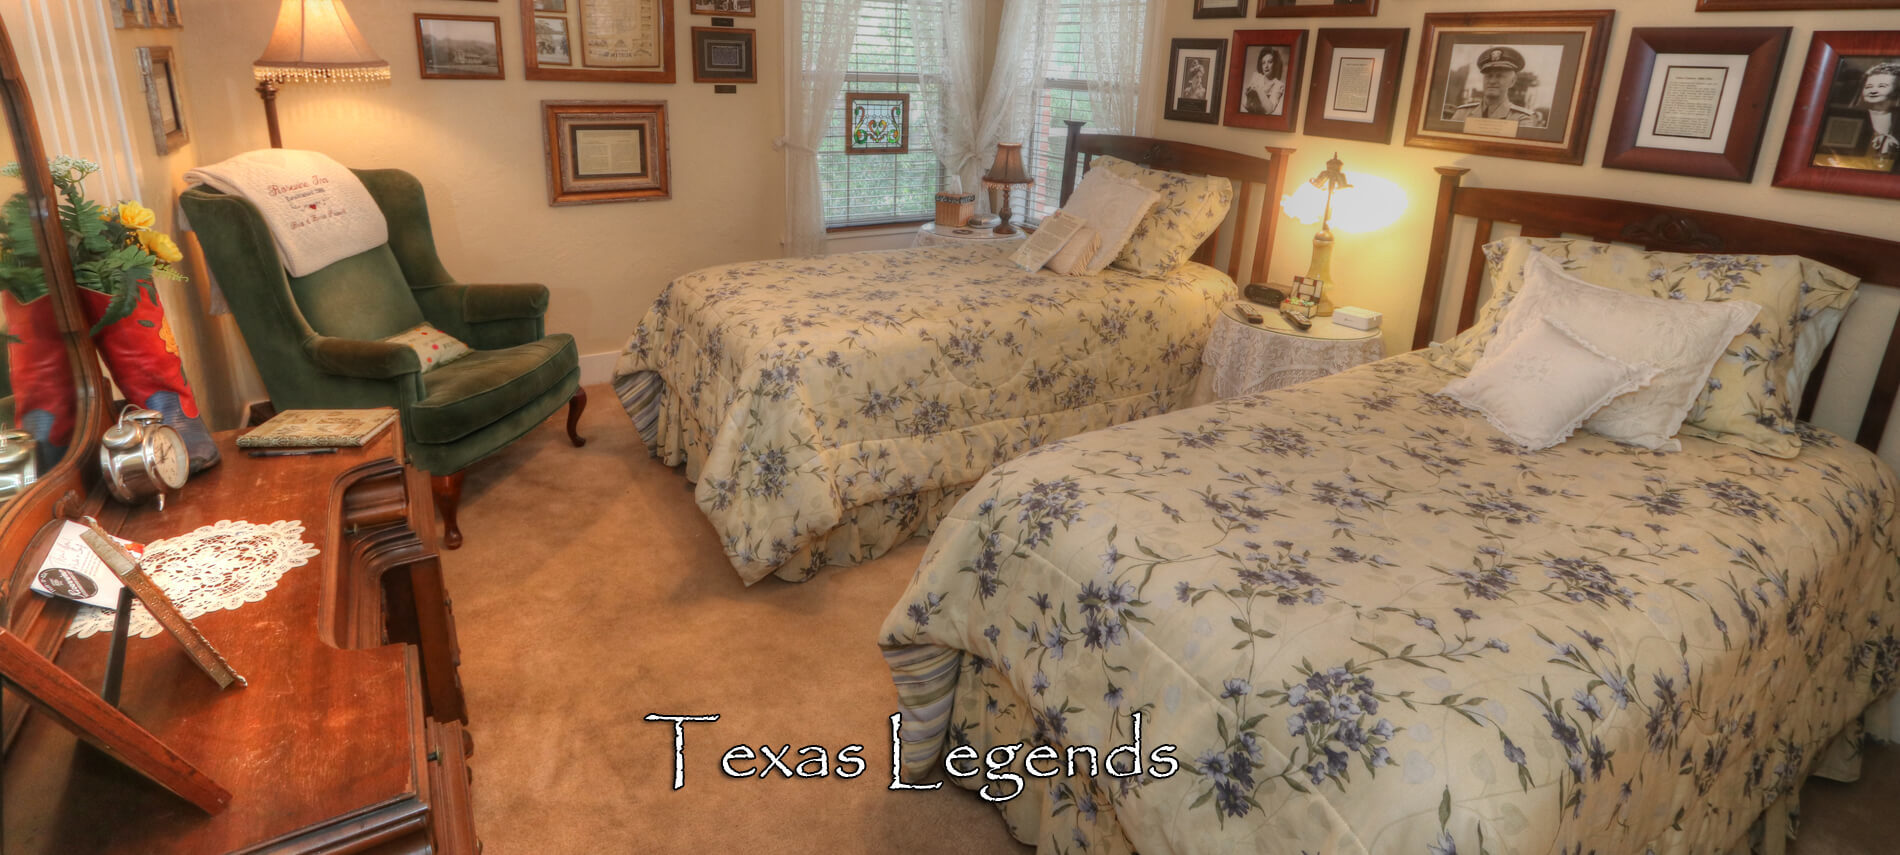 Texas Legends Room with two twin brass beds covered in yellow and blue spreads with nightstand and brass lamps